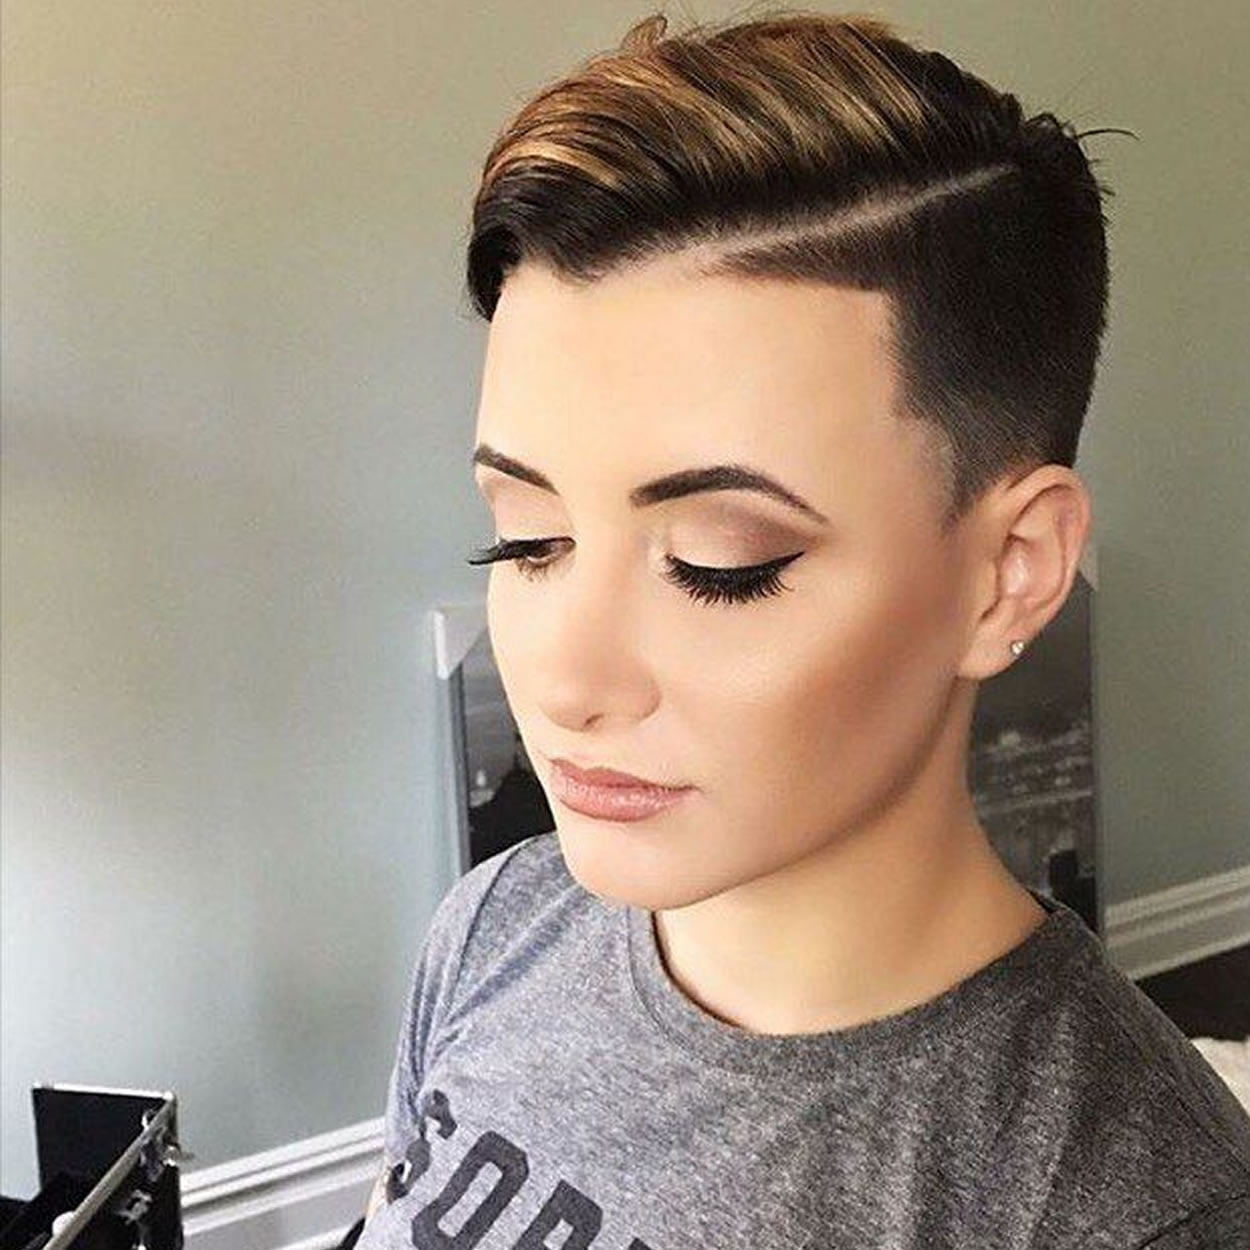 35 Best Pixie Cut Hairstyles For 2019 You Will Want to See |Pixie Hair Cuts